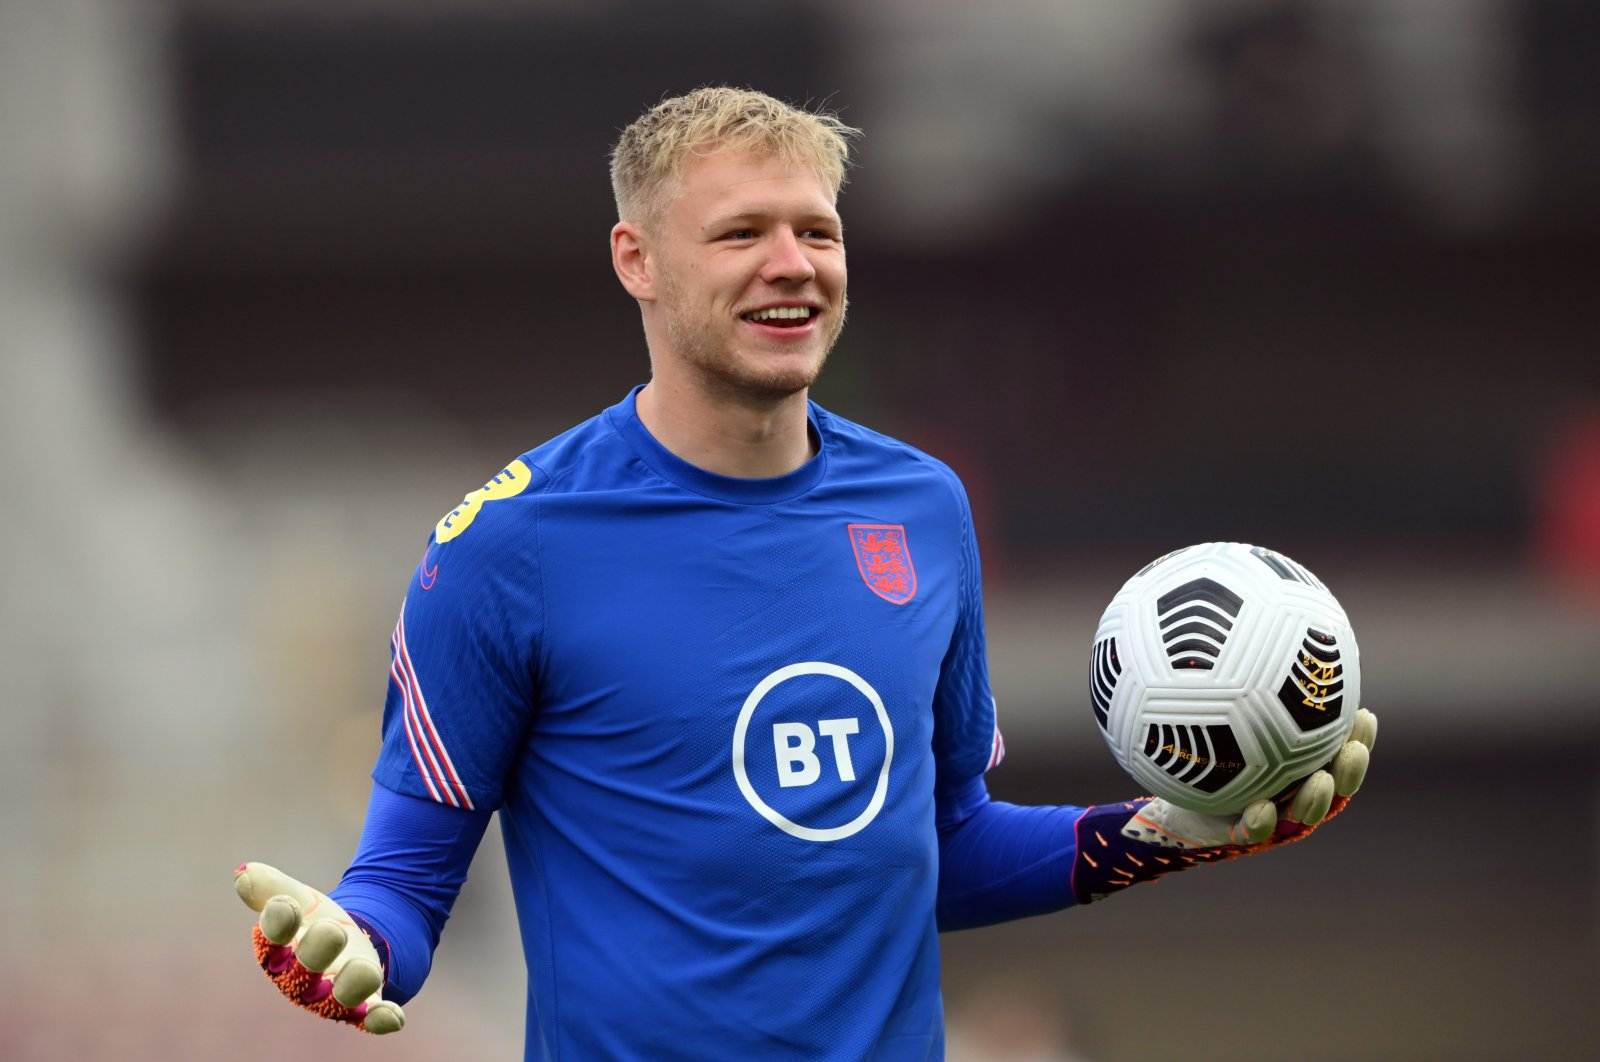 England's Aaron Ramsdale reacts during the warm up before the international friendly between England and Austria at the Riverside Stadium, Middlesbrough, U.K. June 2, 2021 (Reuters Photo)